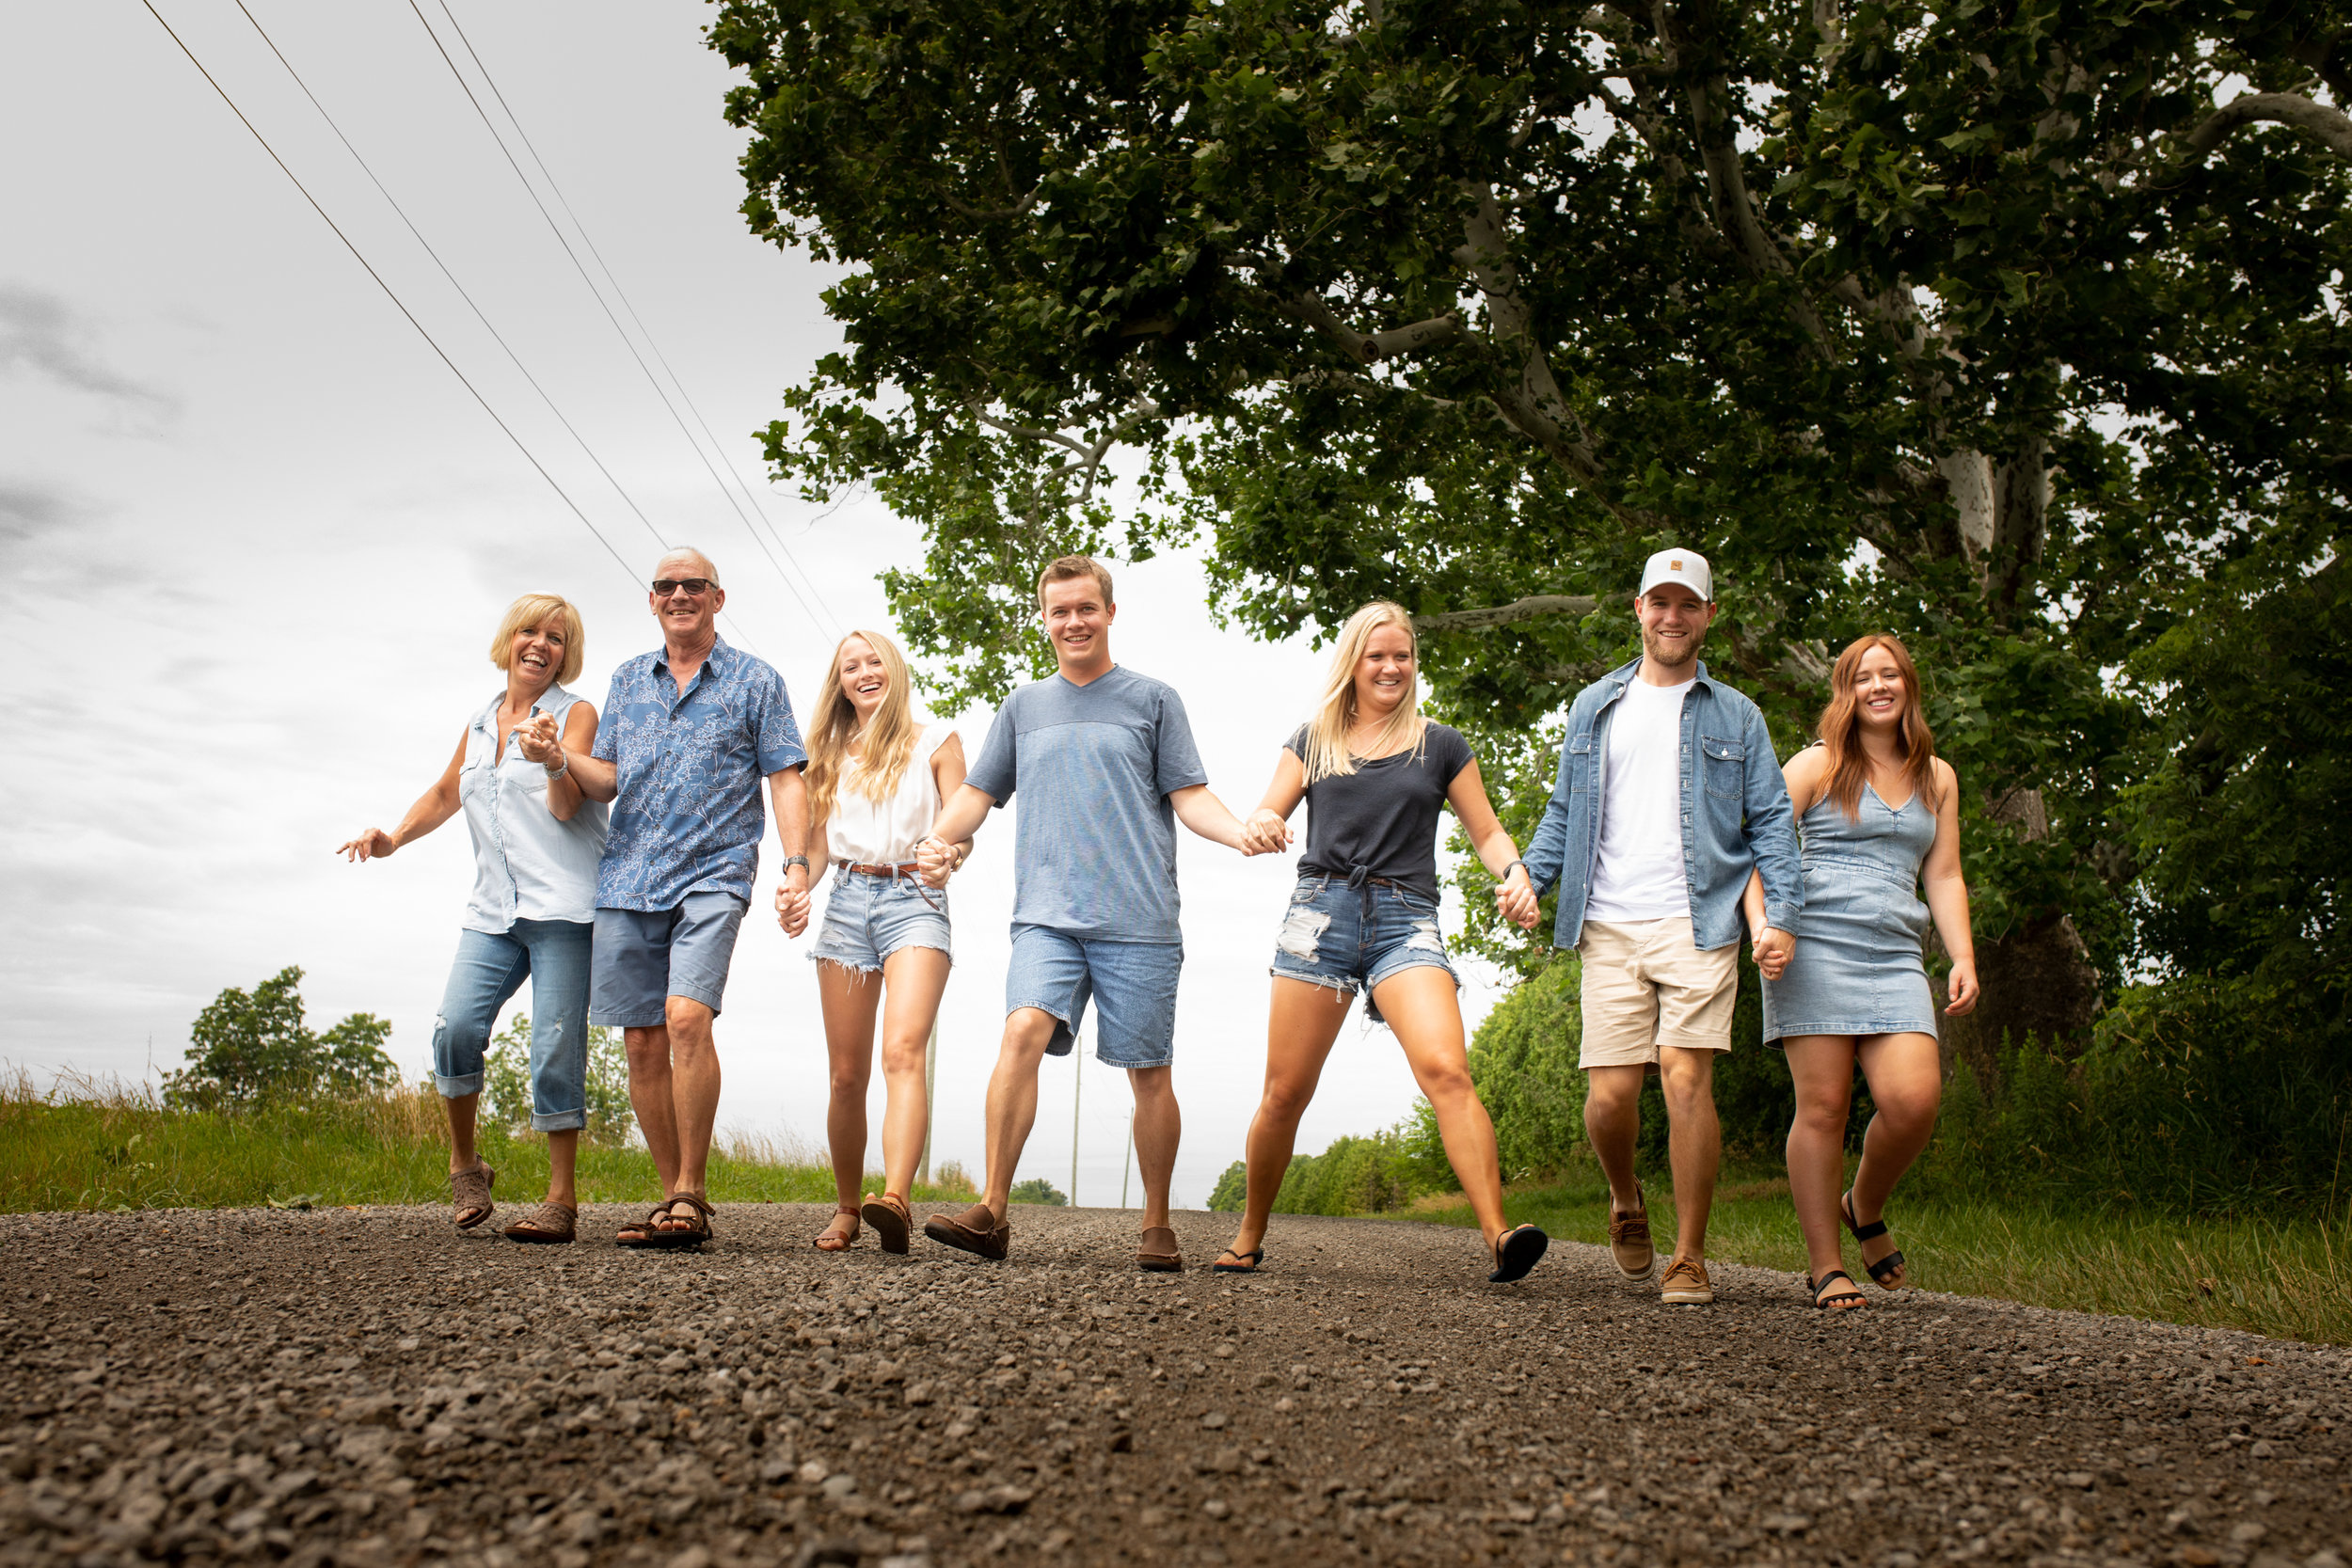 Family-agricultural-photographer-jodie-aldred-photography-rural-country-farm-farmers-ontario-london-huron-middlesex-elgin-chatham-elgin-rural-country-outdoors-summer-gravel-road.jpg